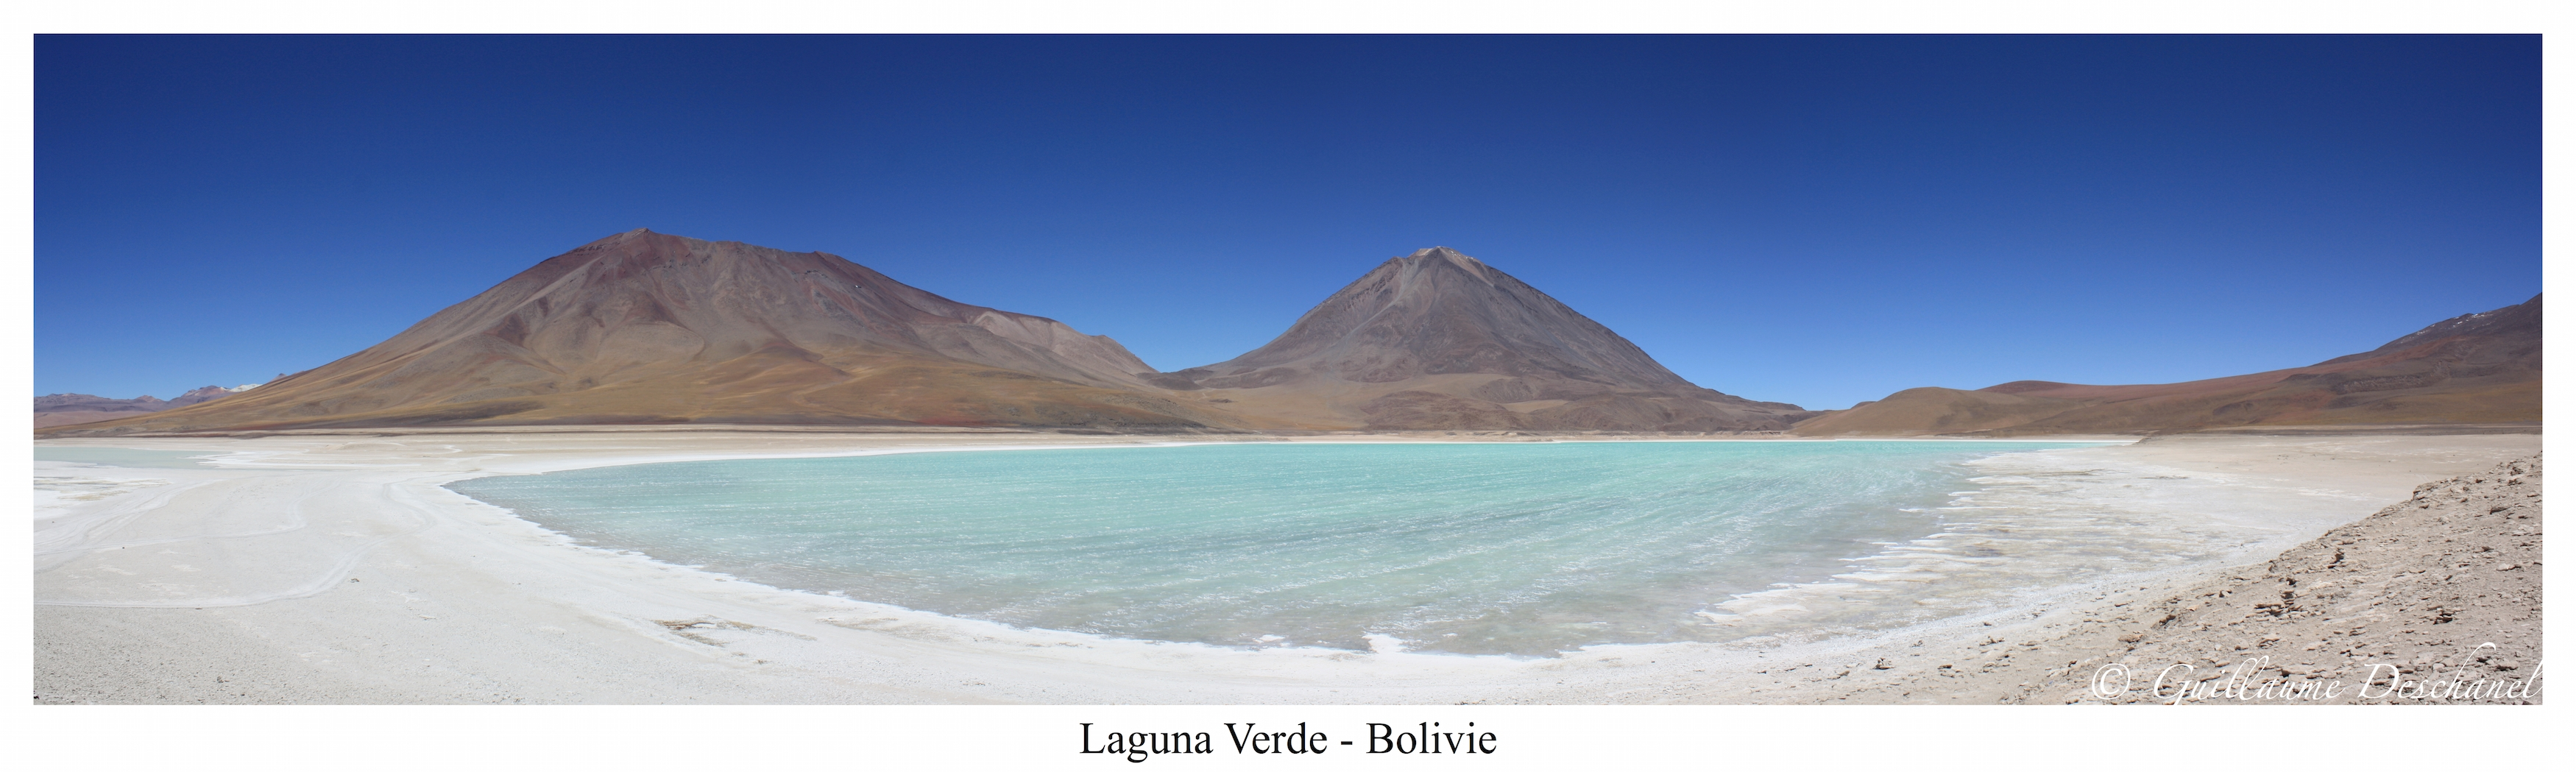 Panoramique 3 - Laguna Verde - Bolivie - copie